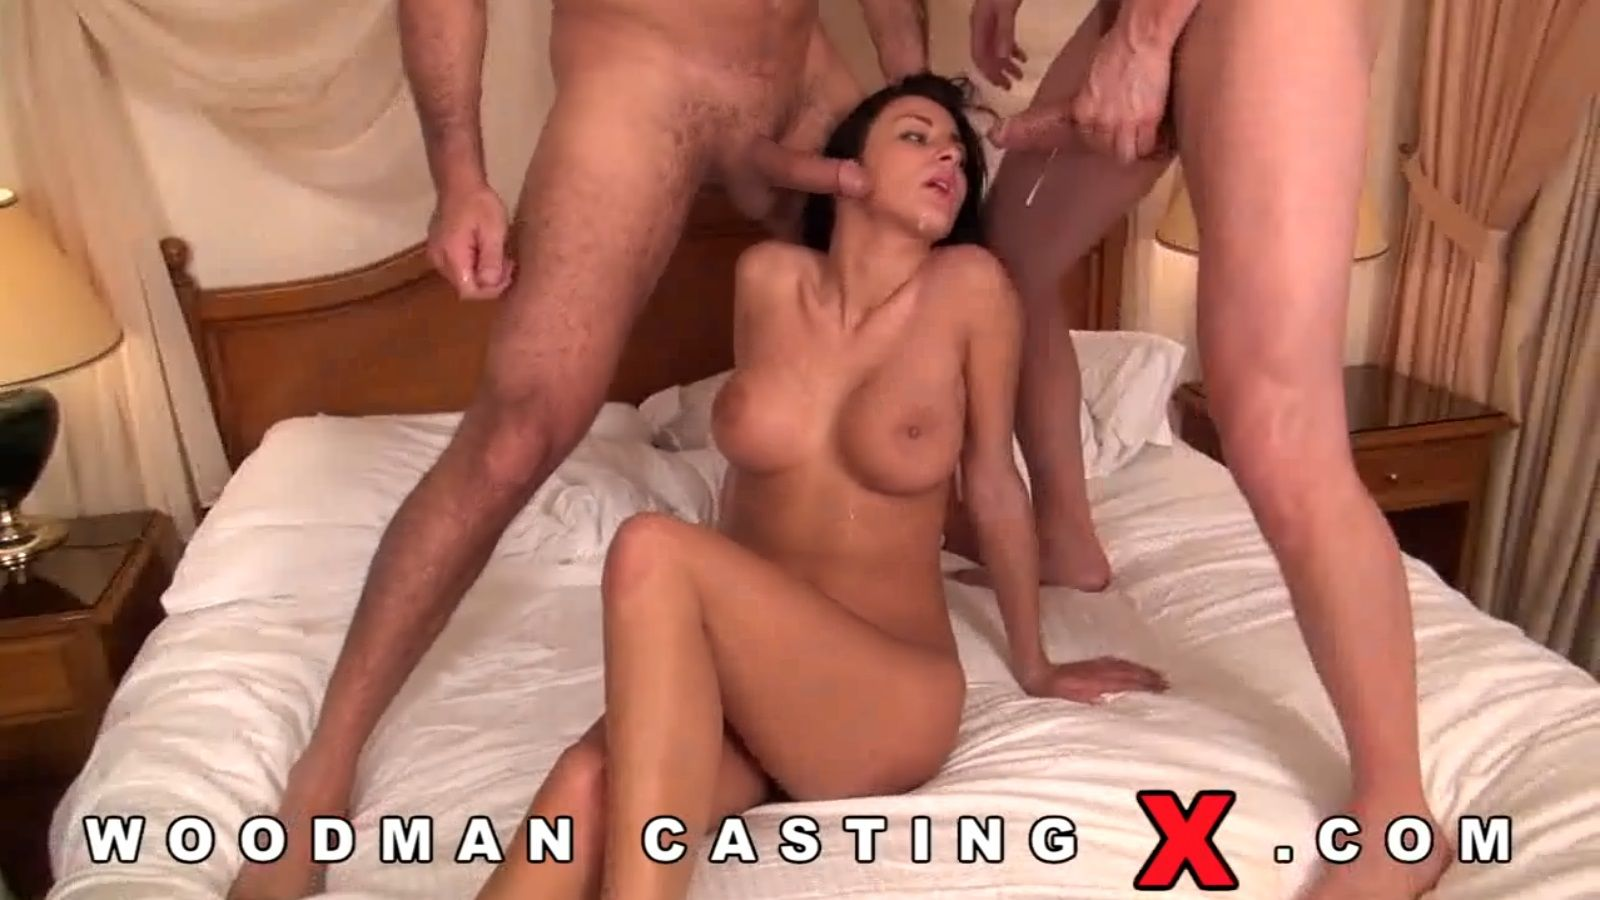 Woodmancastingx 14 02 03 Innocencia Casting And Hardcore Xxx